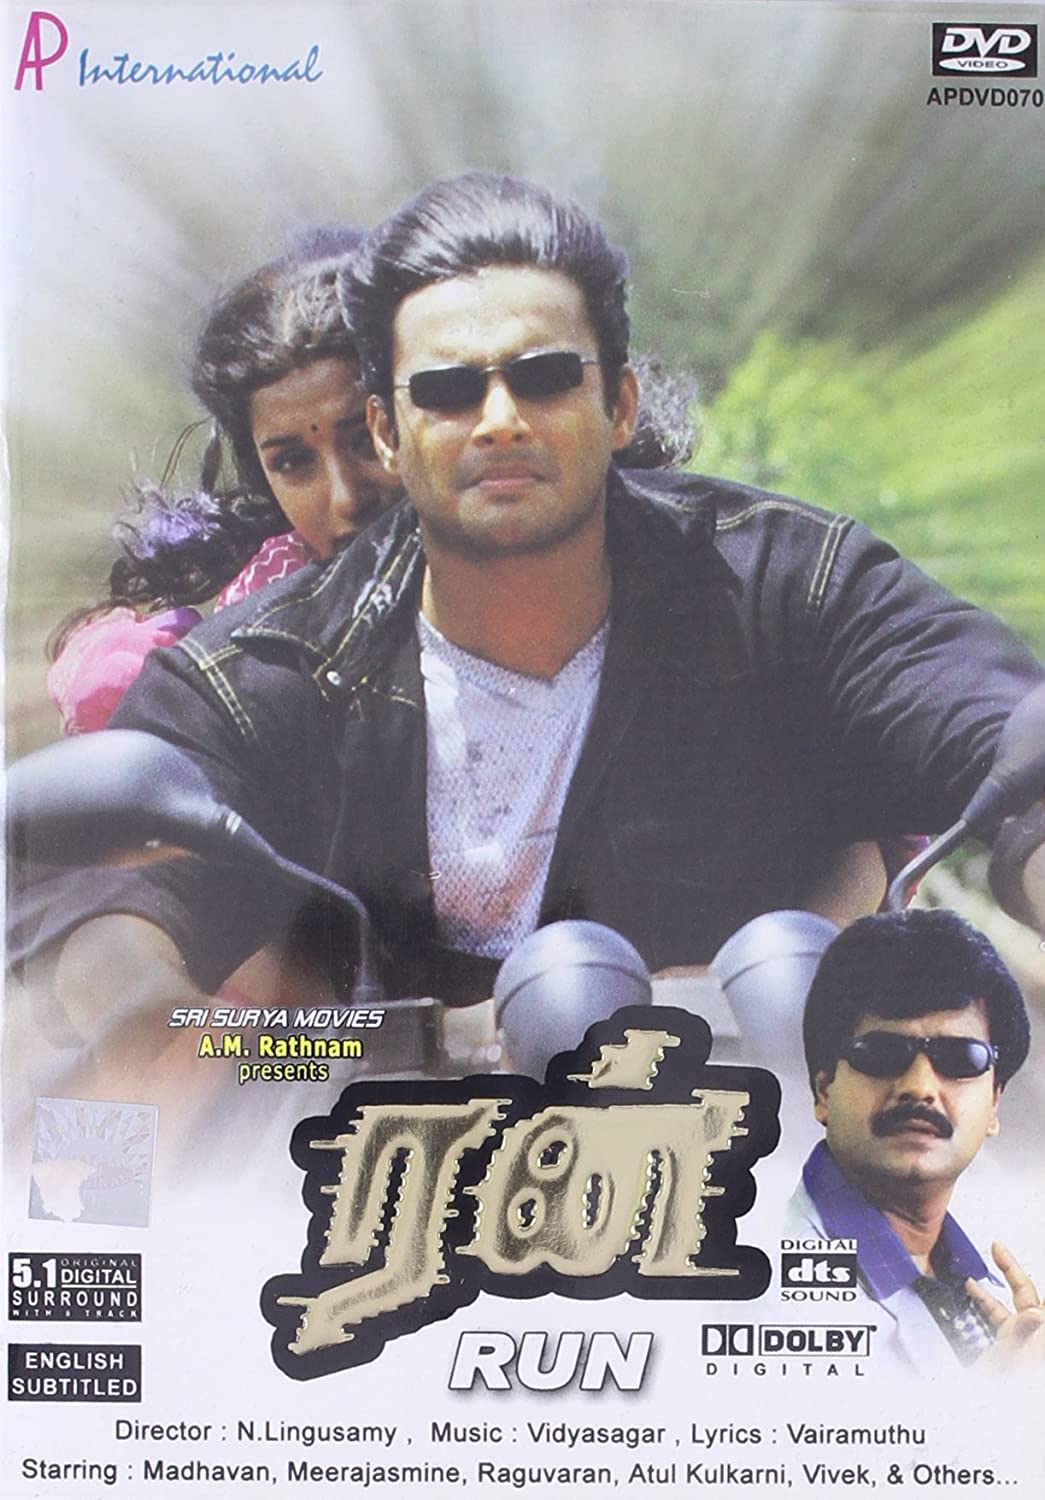 Run Tamil DVD ( All Regions, English Subtitles): Amazon.ca: DVD